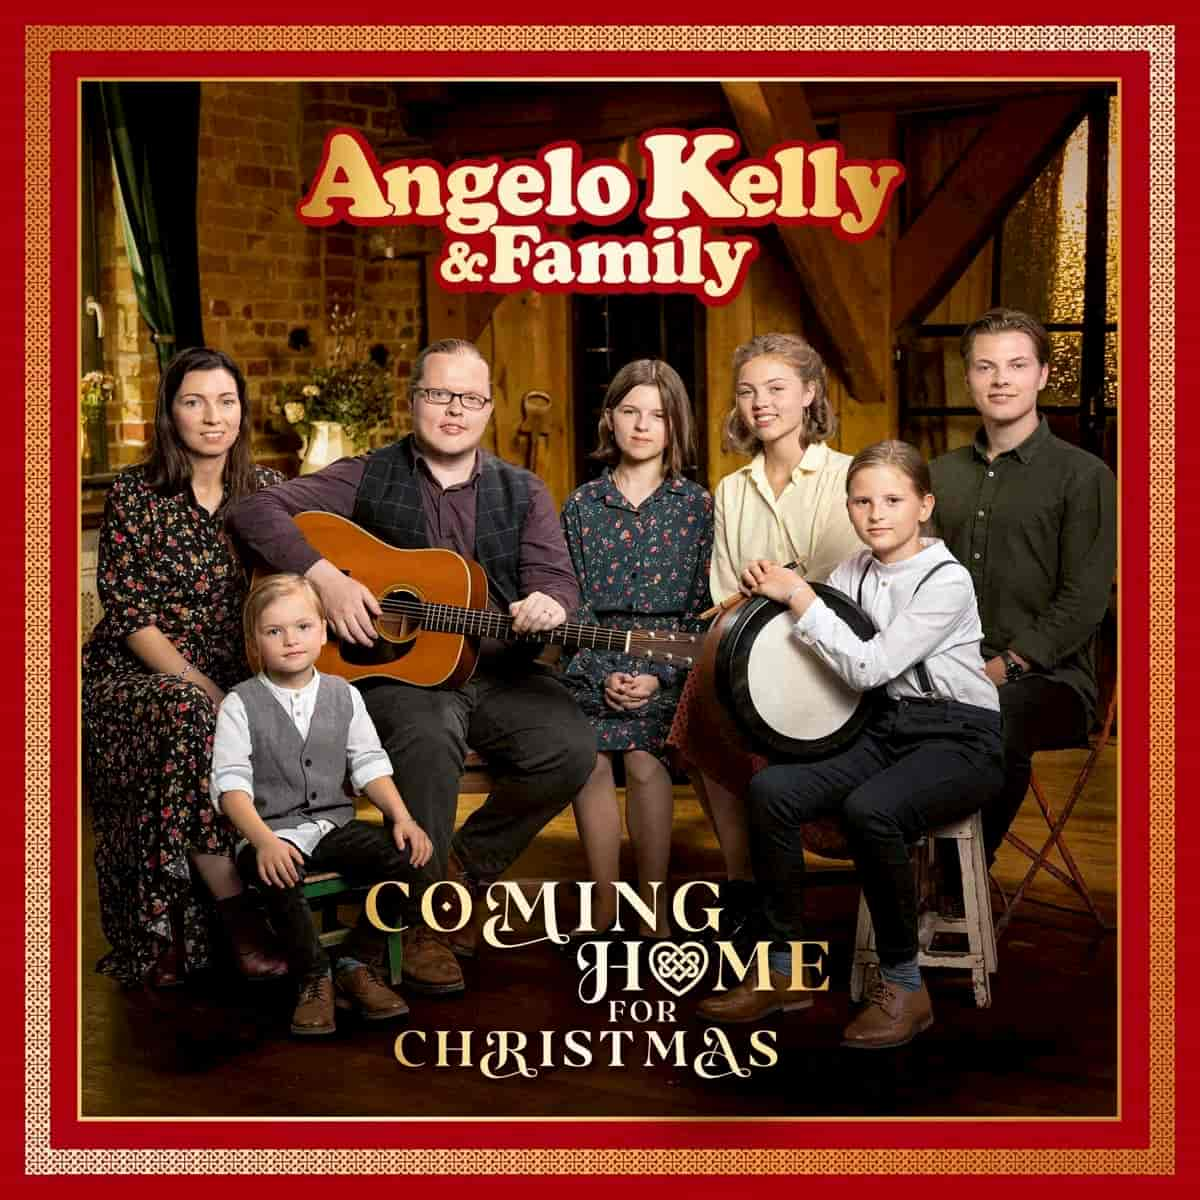 Angelo Kelly & Family Coming Home for Christmas 2020